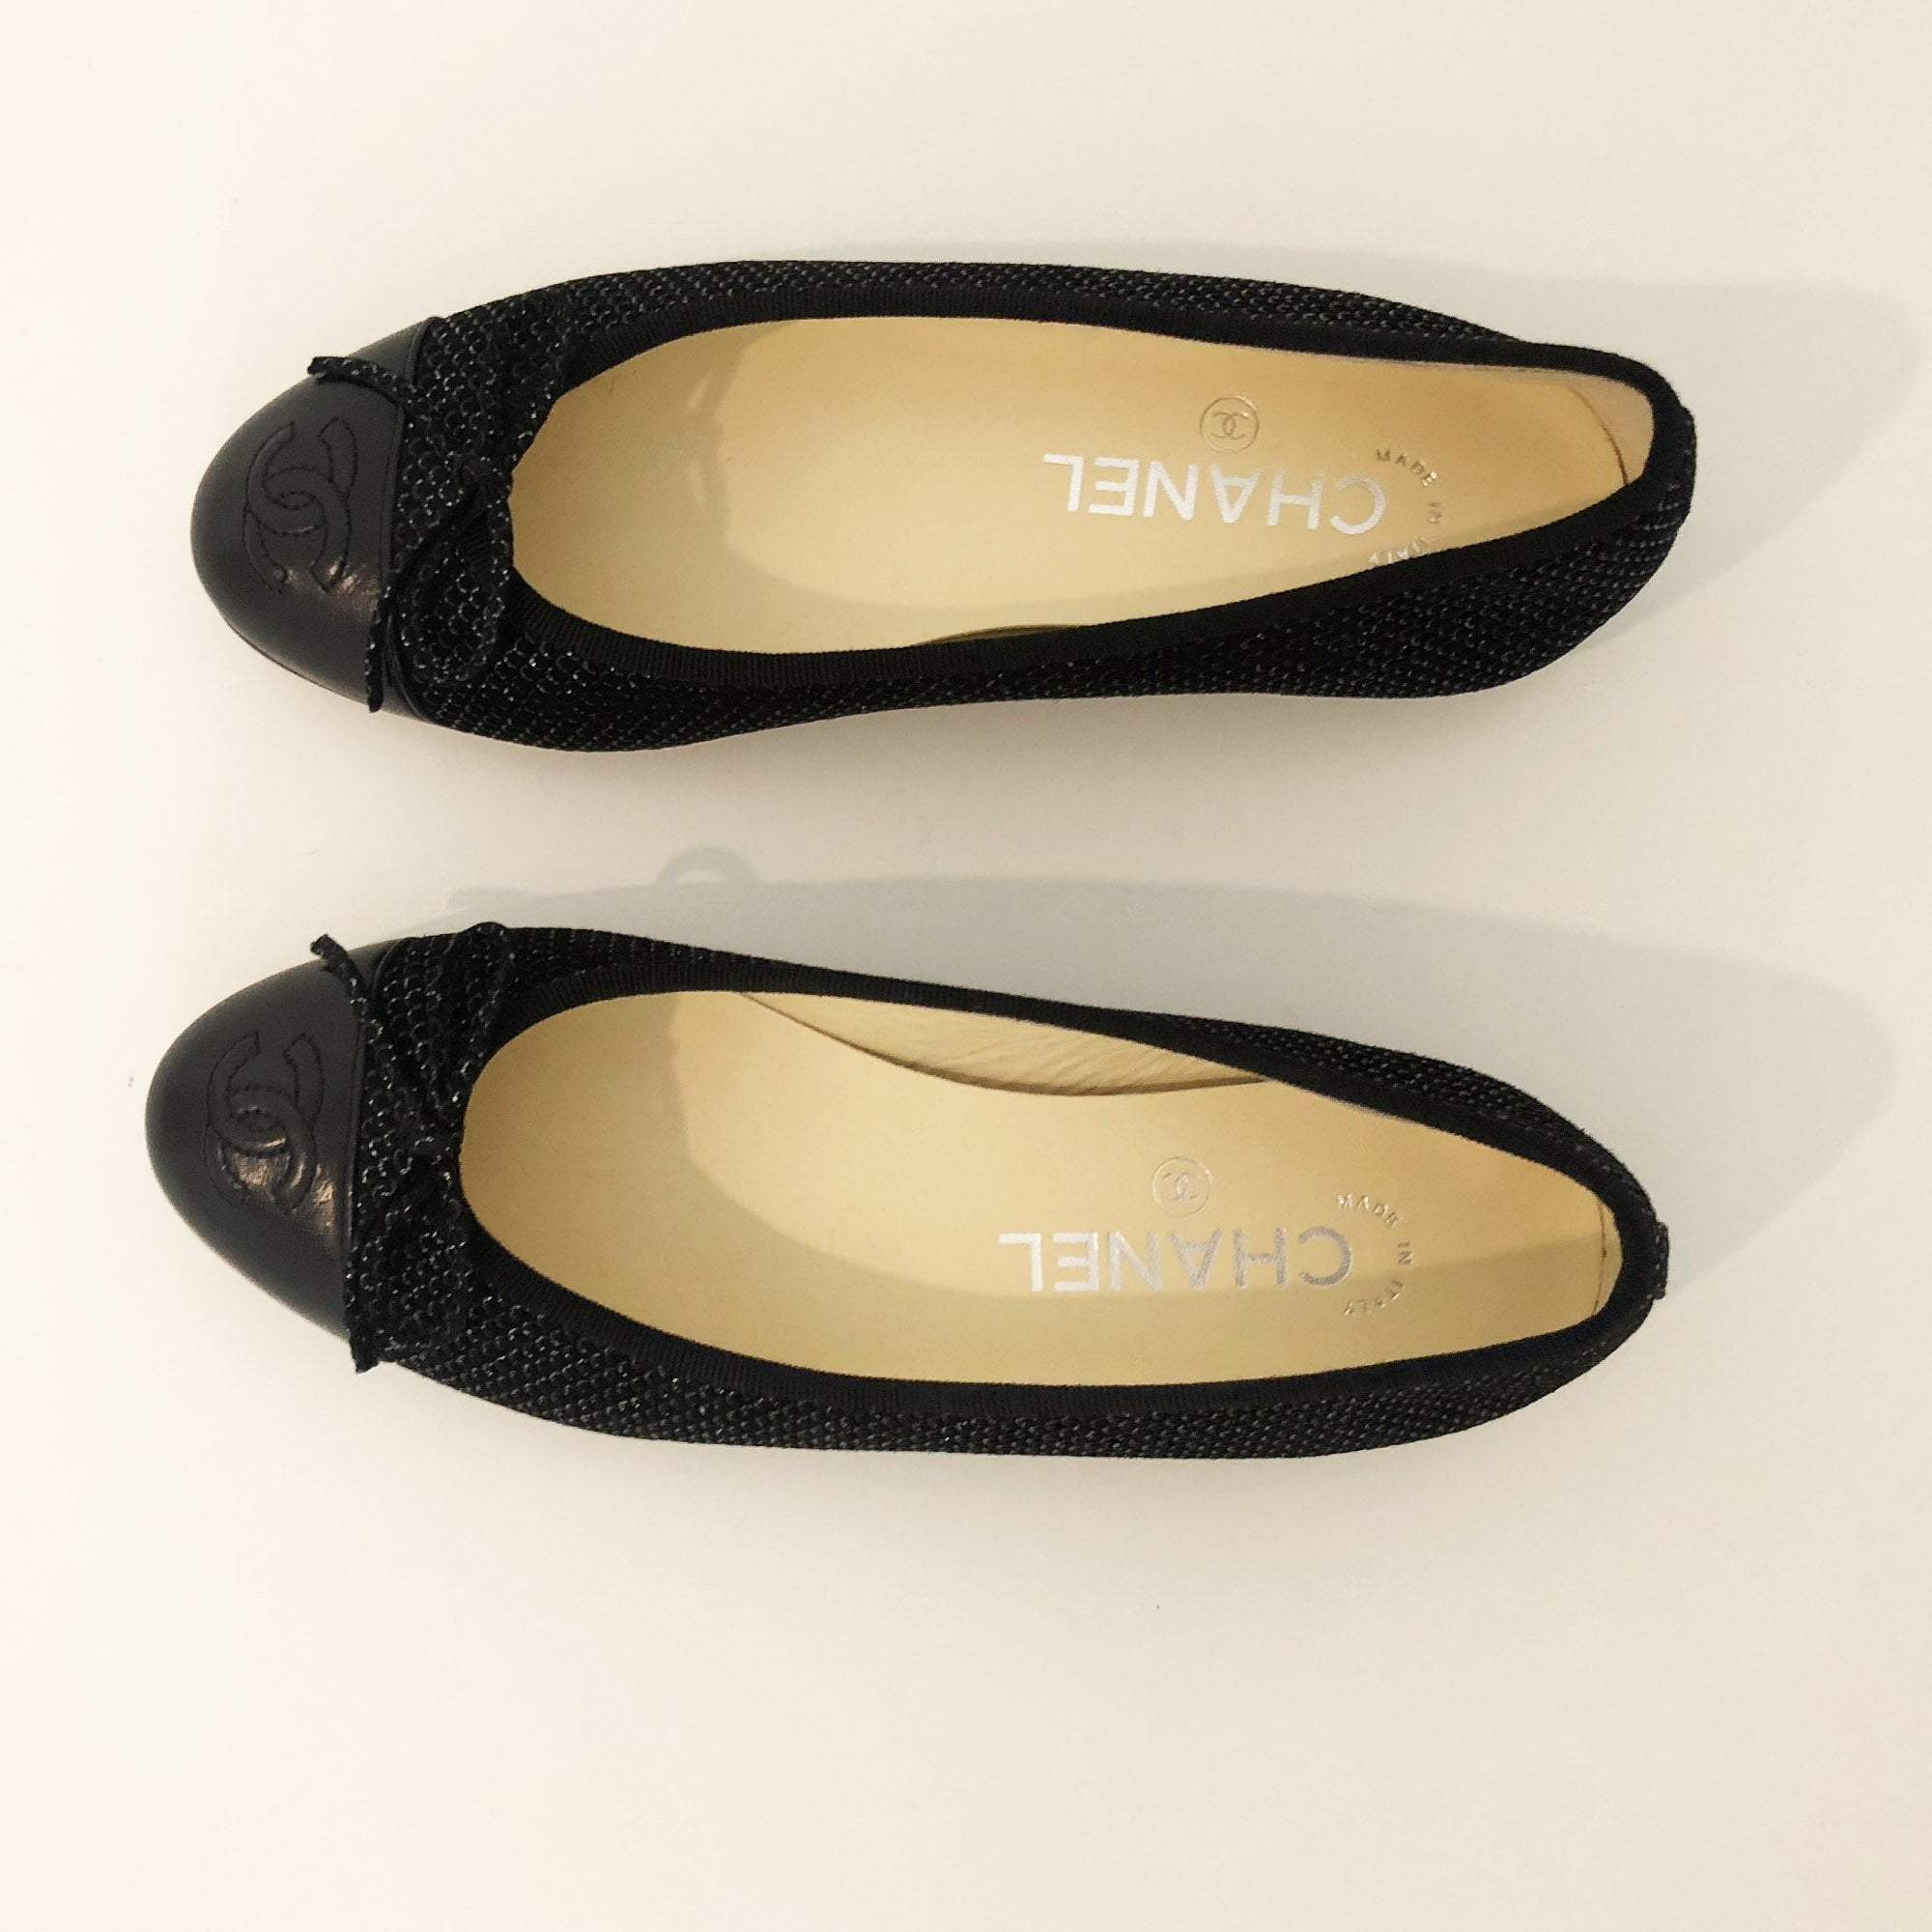 Chanel Black Fabric Ballerinas with glitter Finish